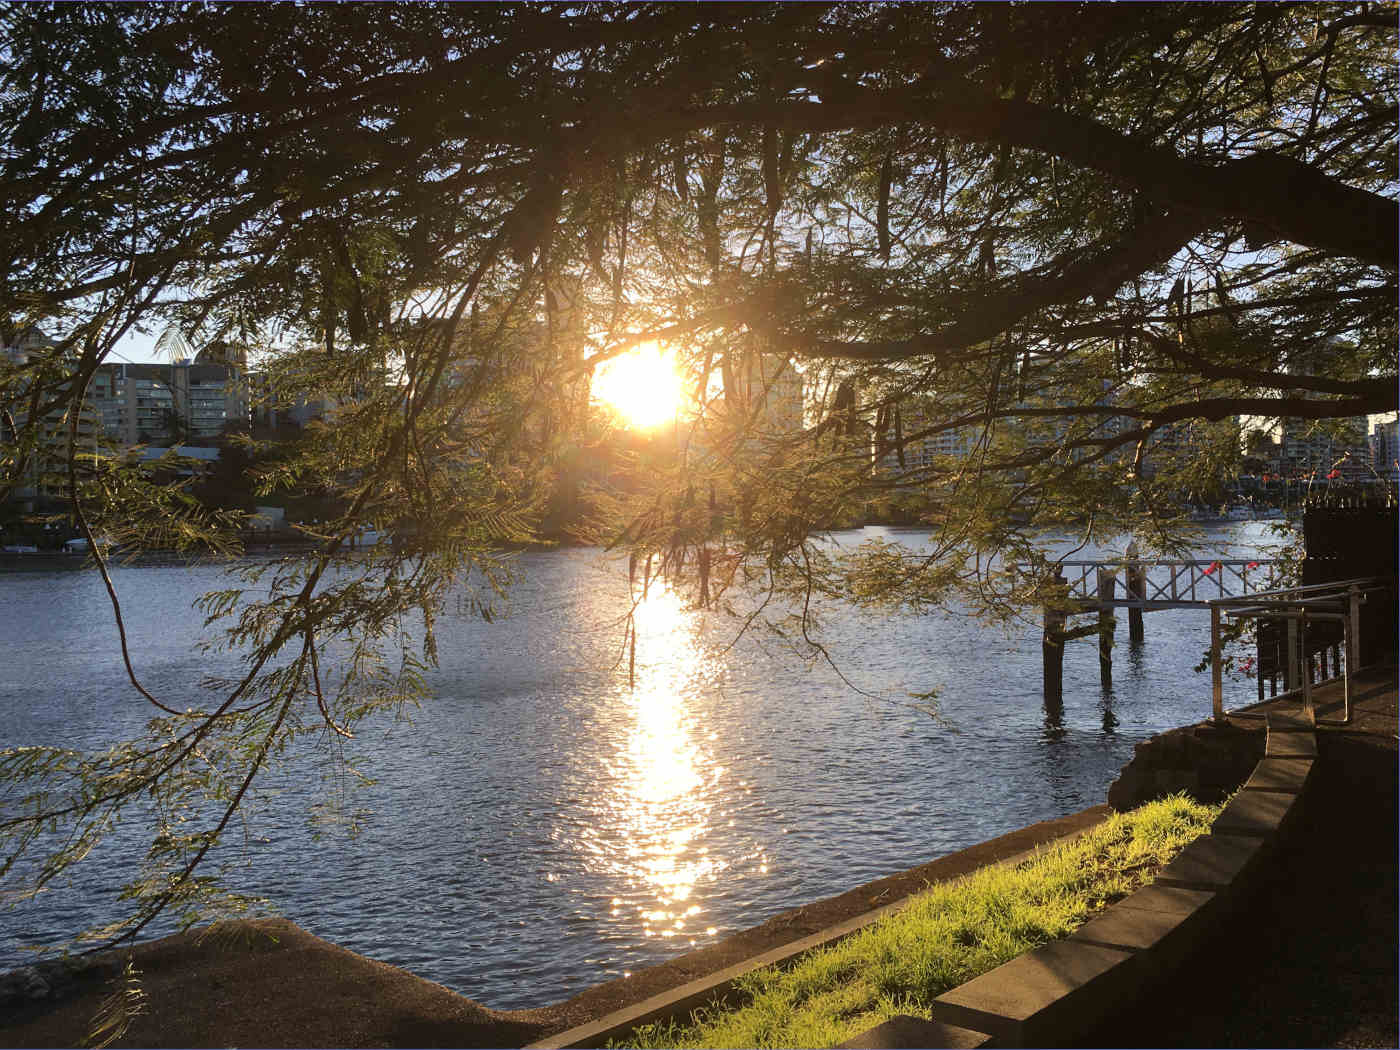 Brisbane River at sunset by Kerrie Redgate